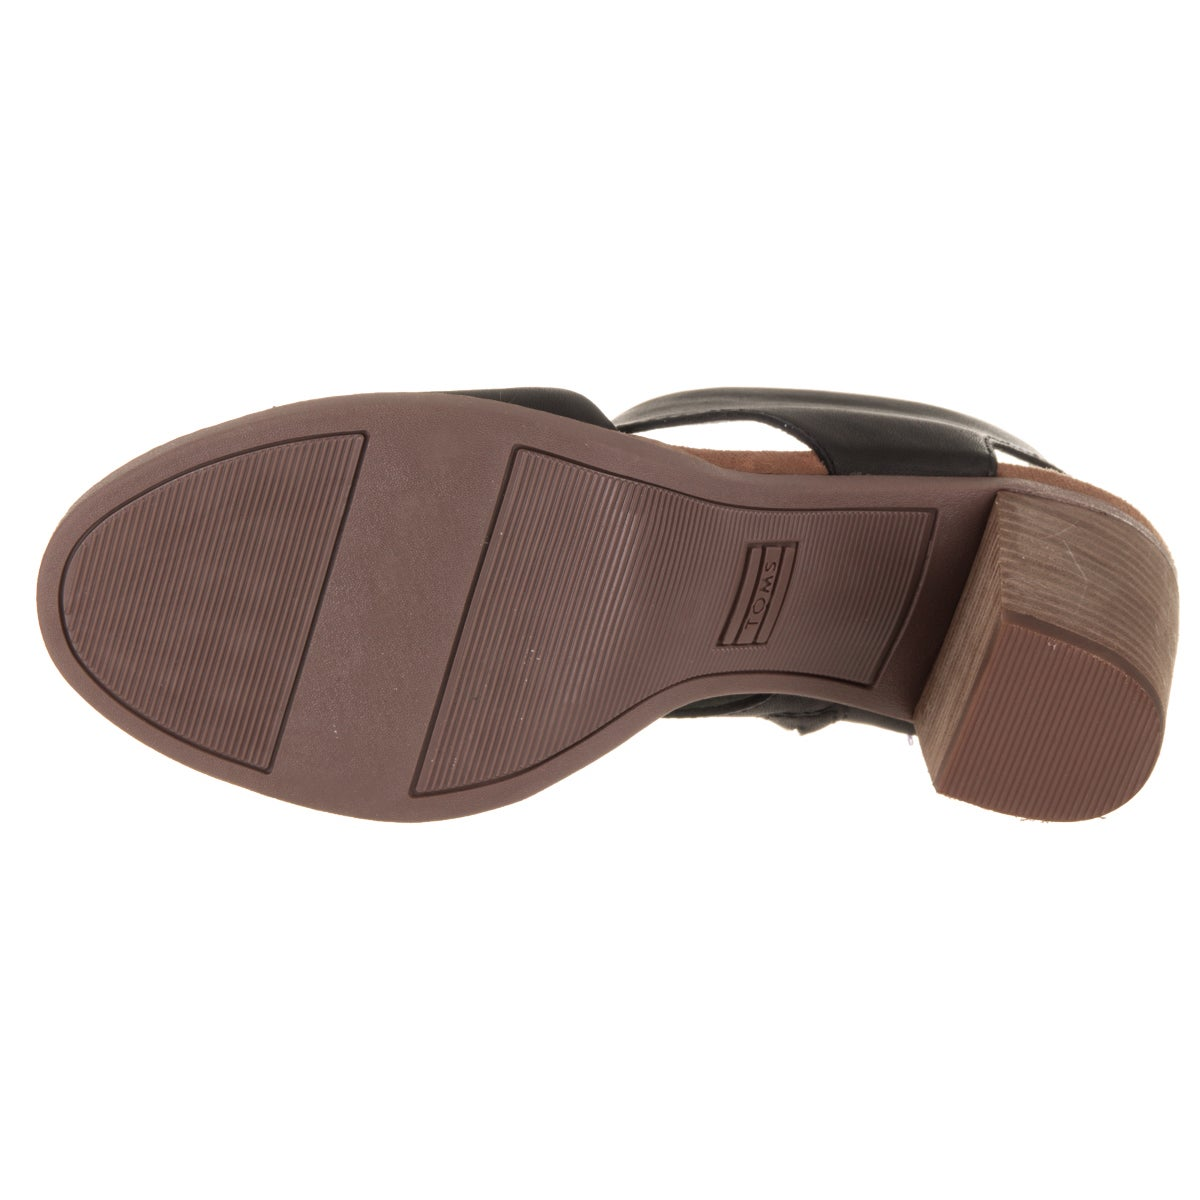 dcdd28f972d Shop Toms Women s Majorca Black Leather Cutout Sandals - Free Shipping  Today - Overstock - 14231012